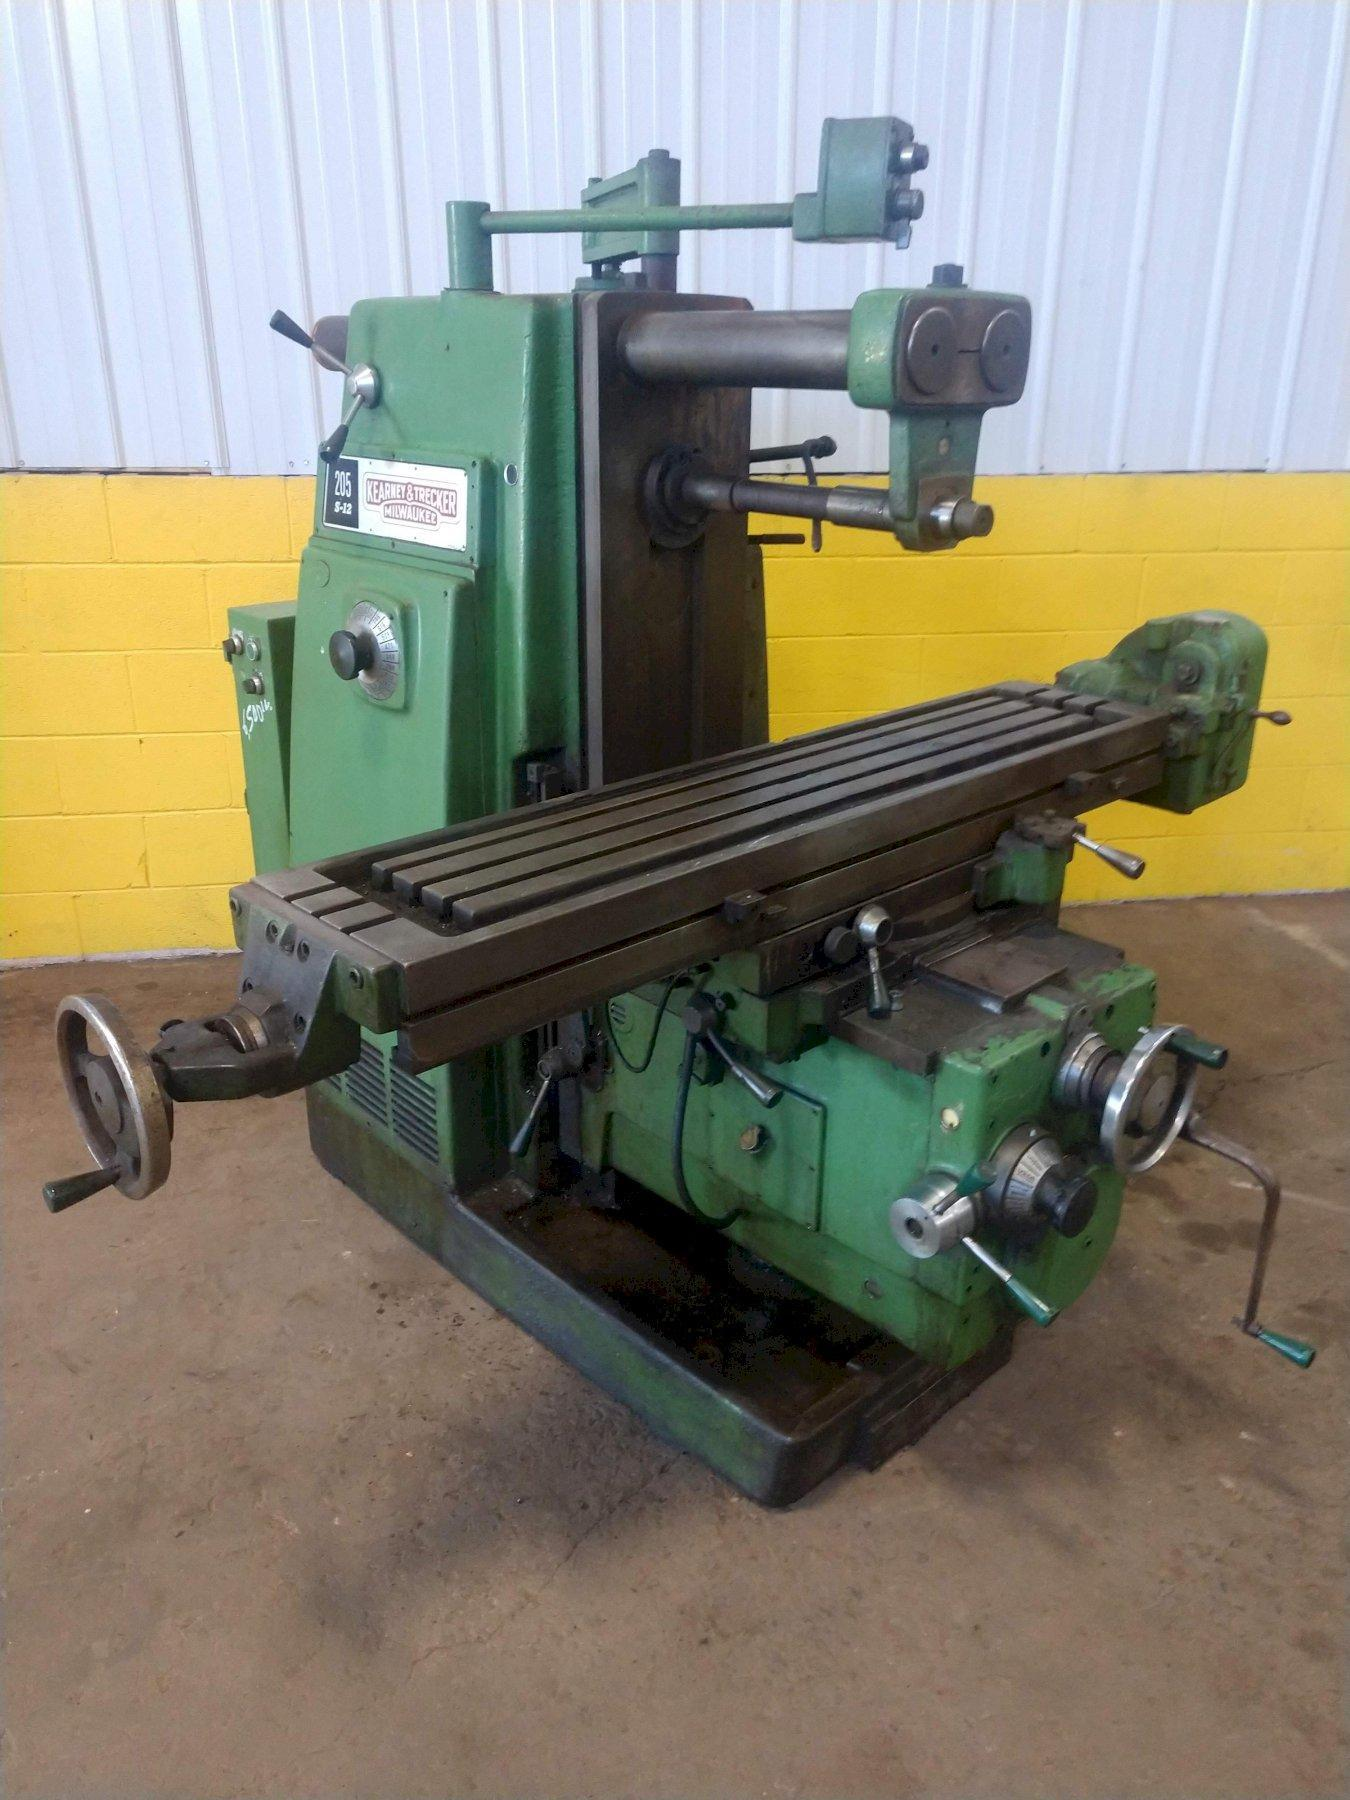 KEARNEY & TRECKER MODEL #205 S-12 HORIZONTAL MILL WITH VERTICAL HEAD ATTACHMENT: STOCK #12910